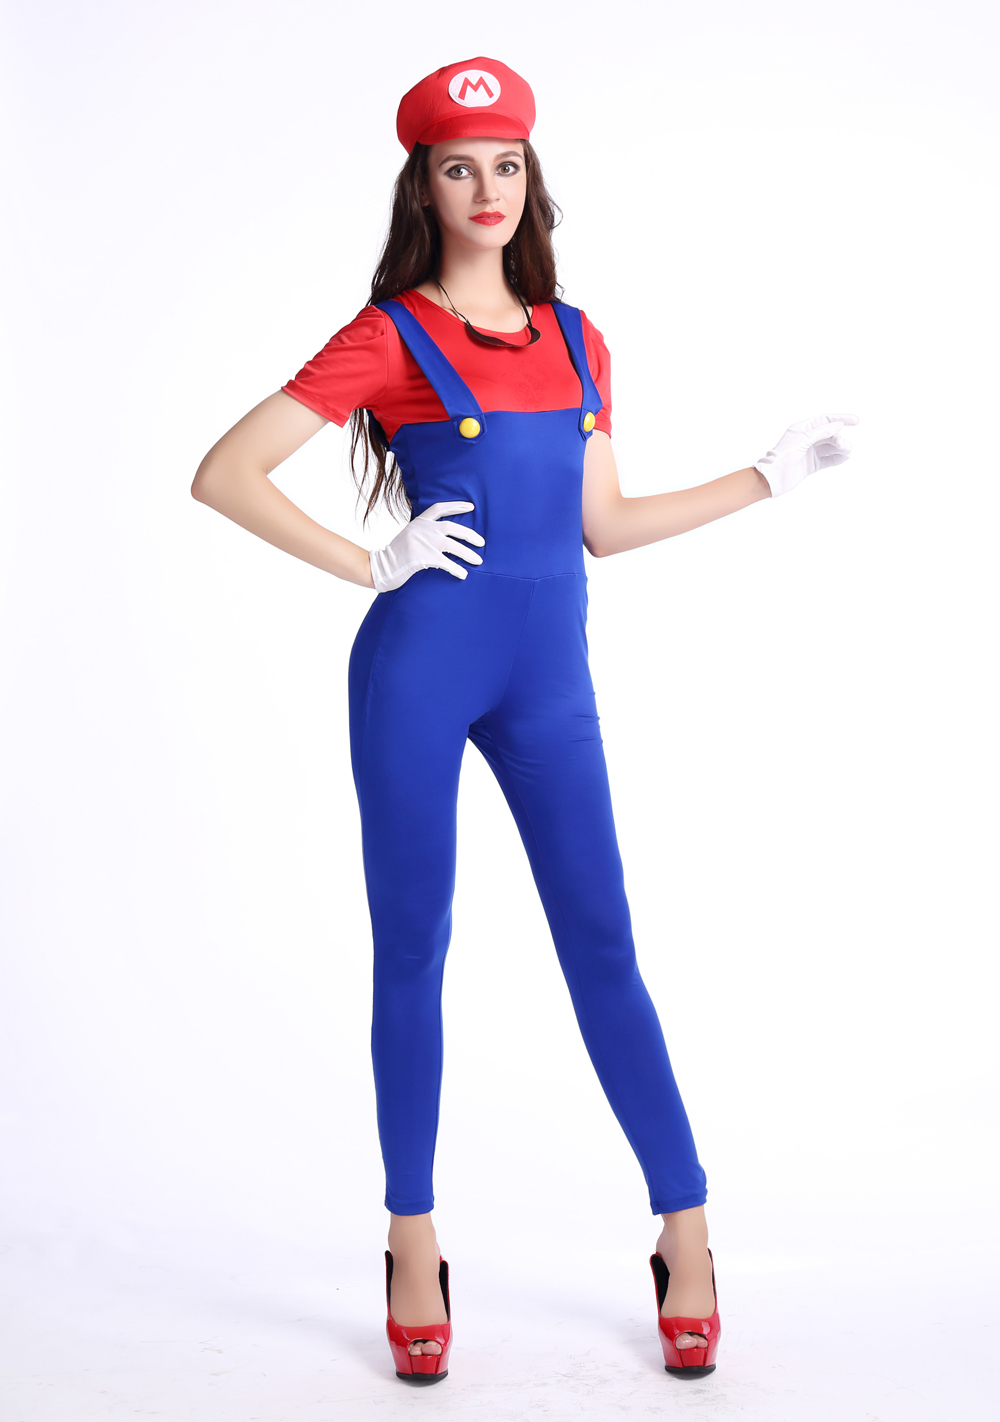 F1679-1 Halloween Women Fancy Dress Cosplay Costumes Outfits